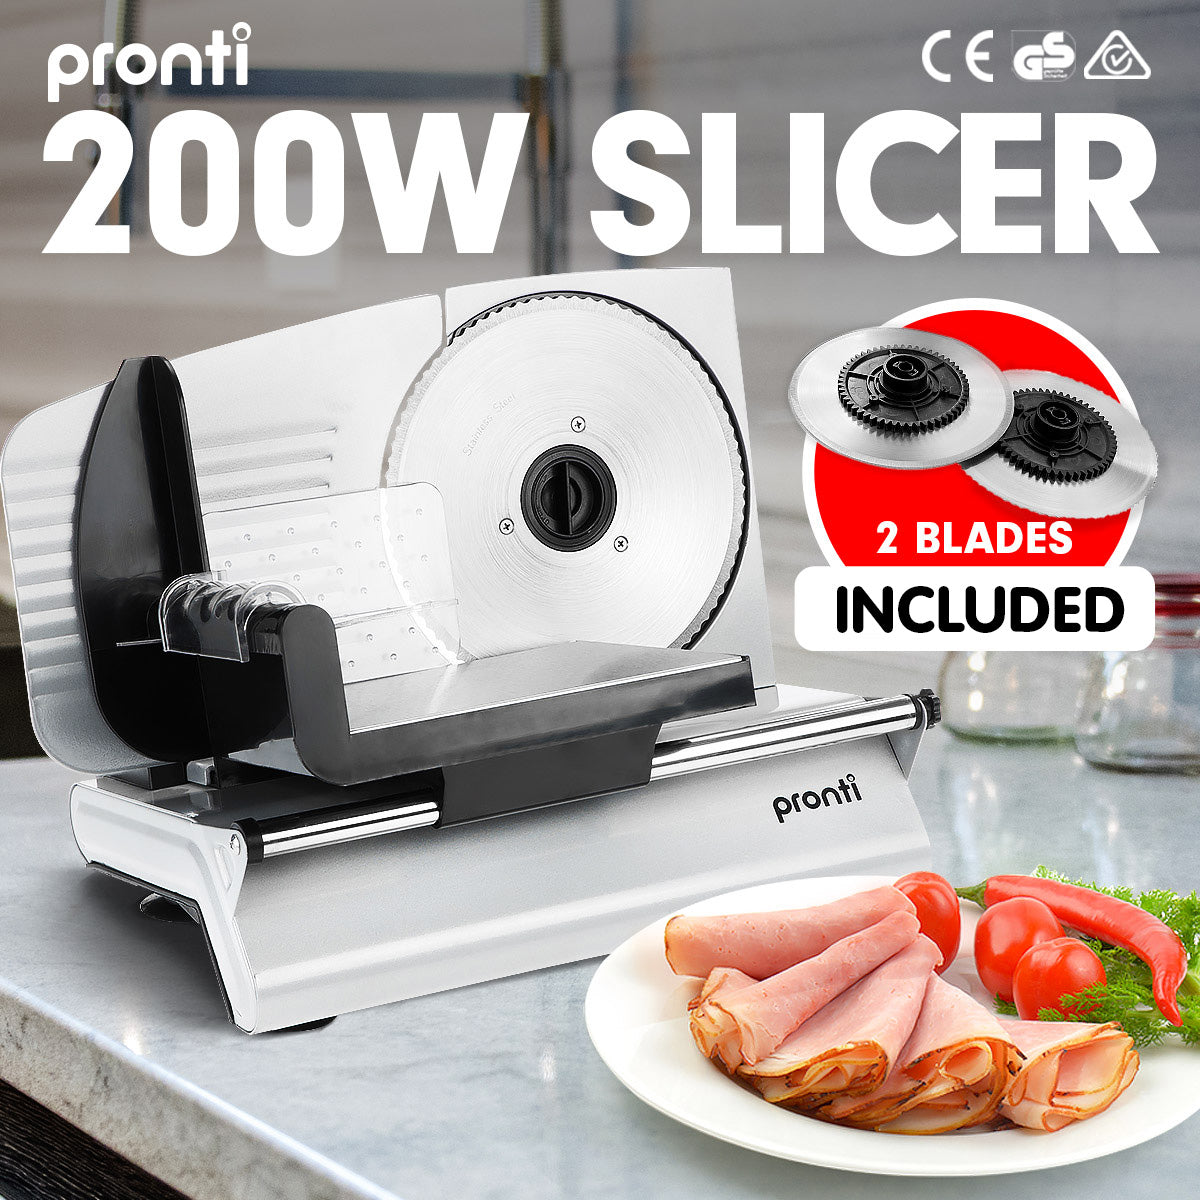 Pronti Deli and Food Electric Meat Slicer 200W Blades Processor